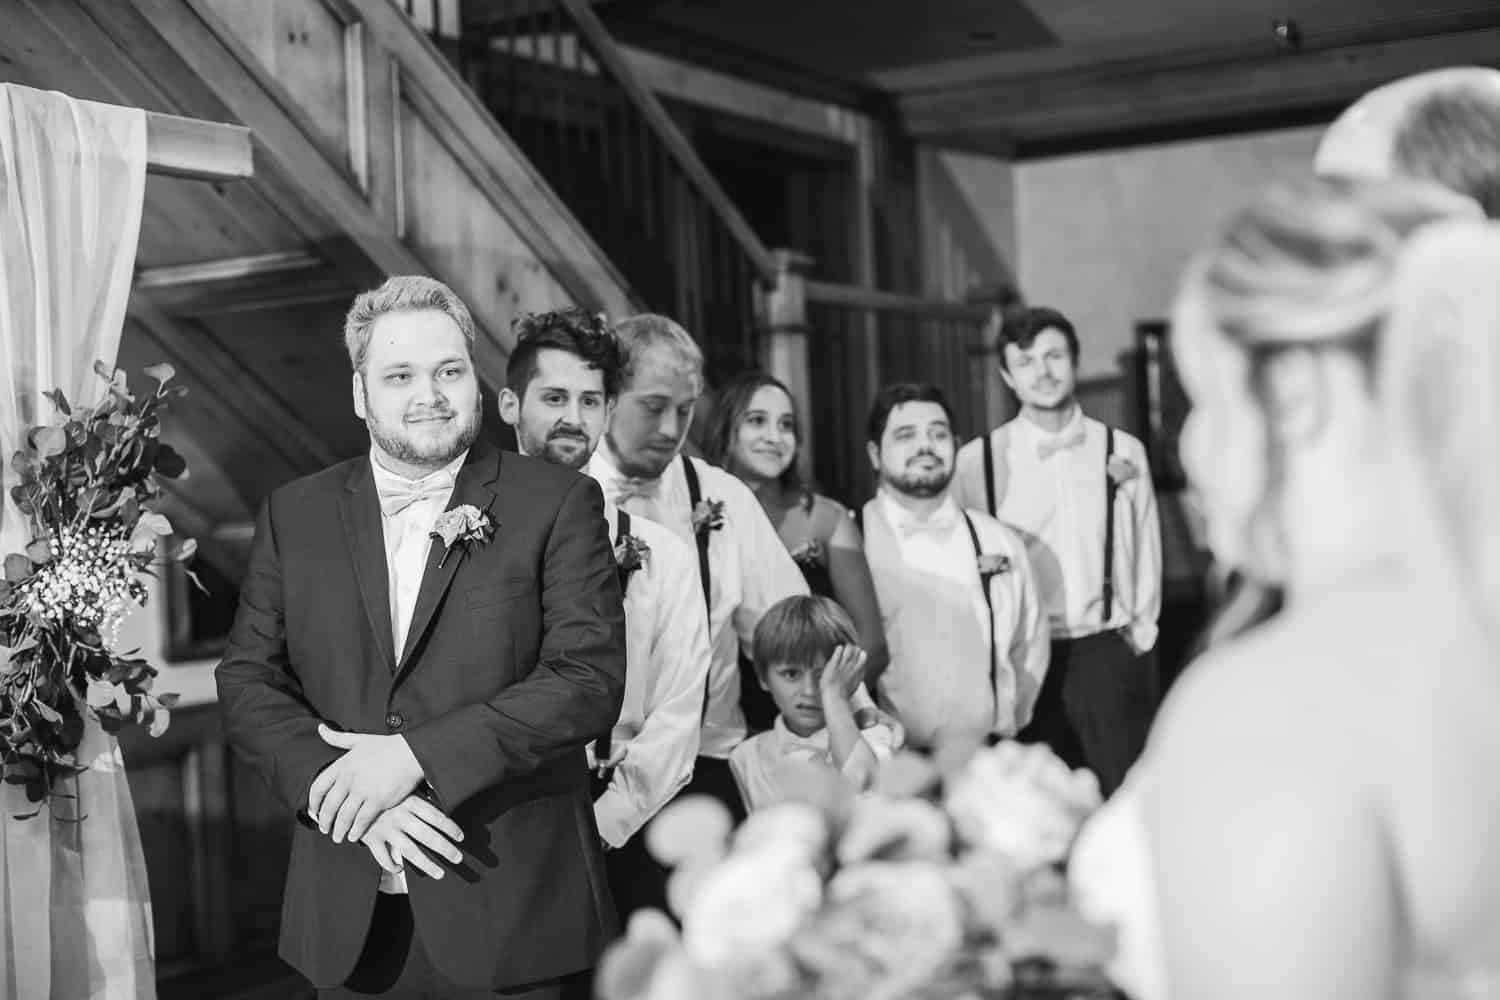 Inside wedding ceremony at the Fire Stables wedding venue in Lenexa